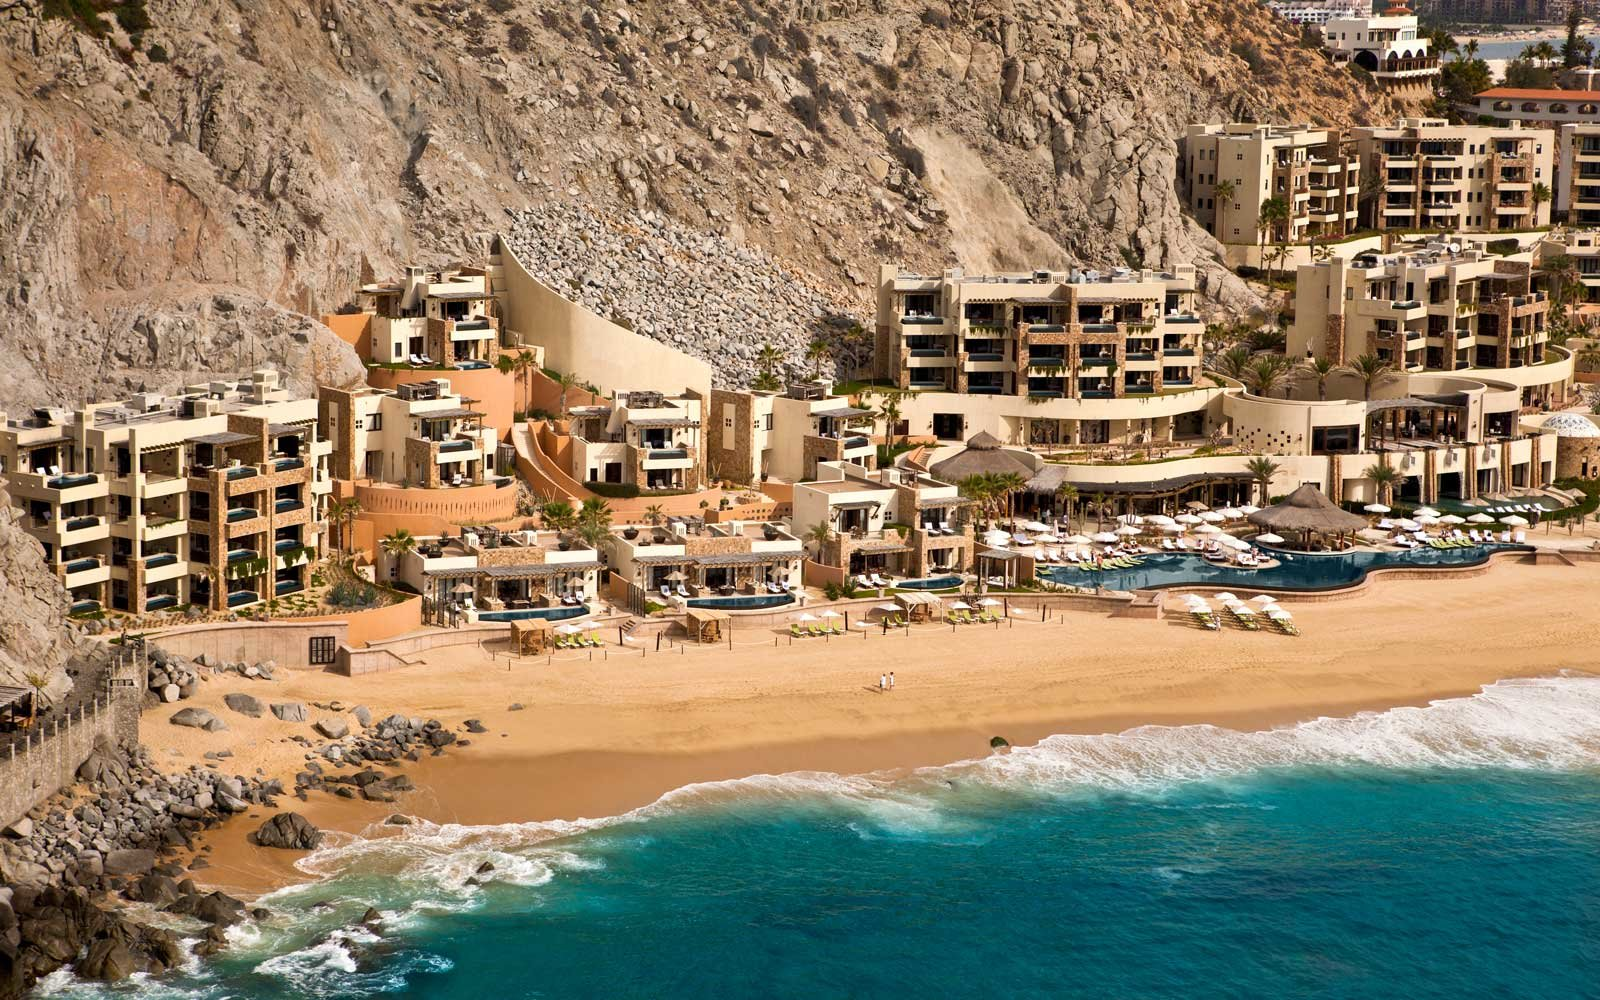 Aerial view of the Resort at Pedregal